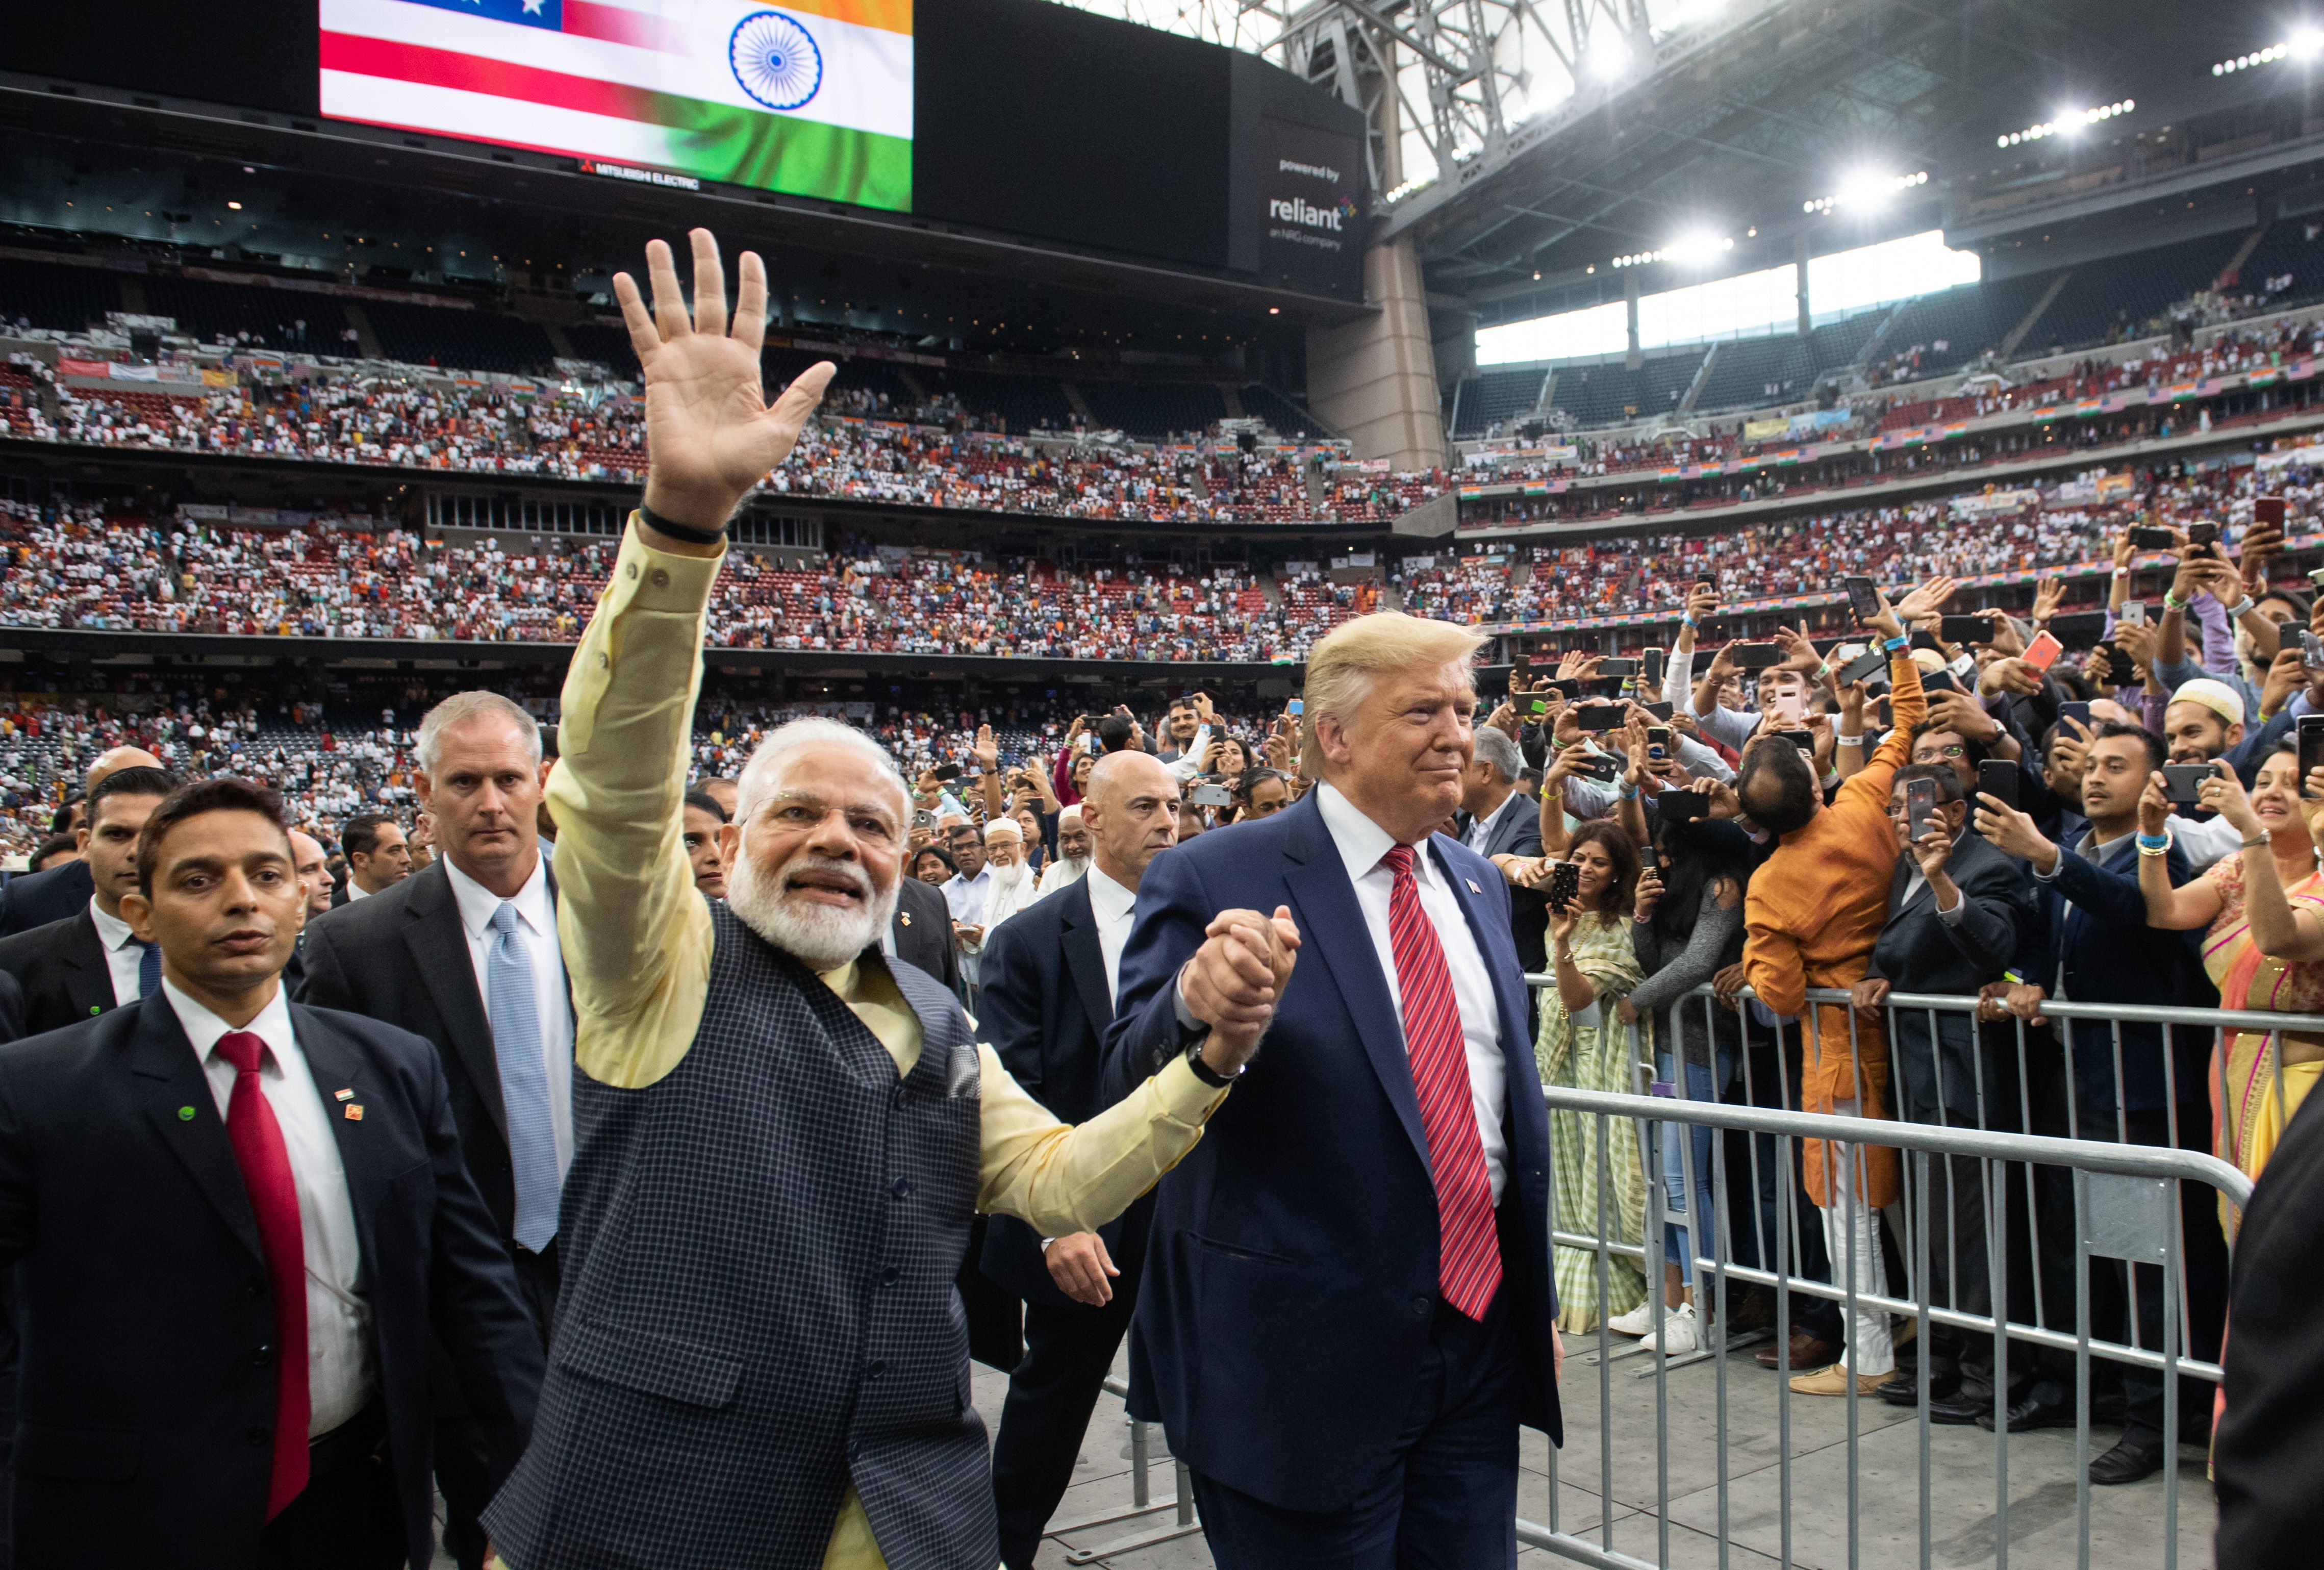 "US President Donald Trump and Indian Prime Minister Narendra Modi attend ""Howdy, Modi!"" at NRG Stadium in Houston, Texas, September 22, 2019. - Tens of thousands of Indian-Americans converged on Houston on Sunday for an unusual joint rally by Donald Trump and Narendra Modi, a visible symbol of the bond between the nationalist-minded leaders. With many in the crowd decked out in formal Indian attire or the signature saffron of Modi's Bharatiya Janata Party, the event kicked off in a football stadium with a Sikh blessing, boisterous bhangra dancing and, in a nod to local customs, cheerleaders in cowboy hats. (Photo by SAUL LOEB / AFP)        (Photo credit should read SAUL LOEB/AFP/Getty Images)"